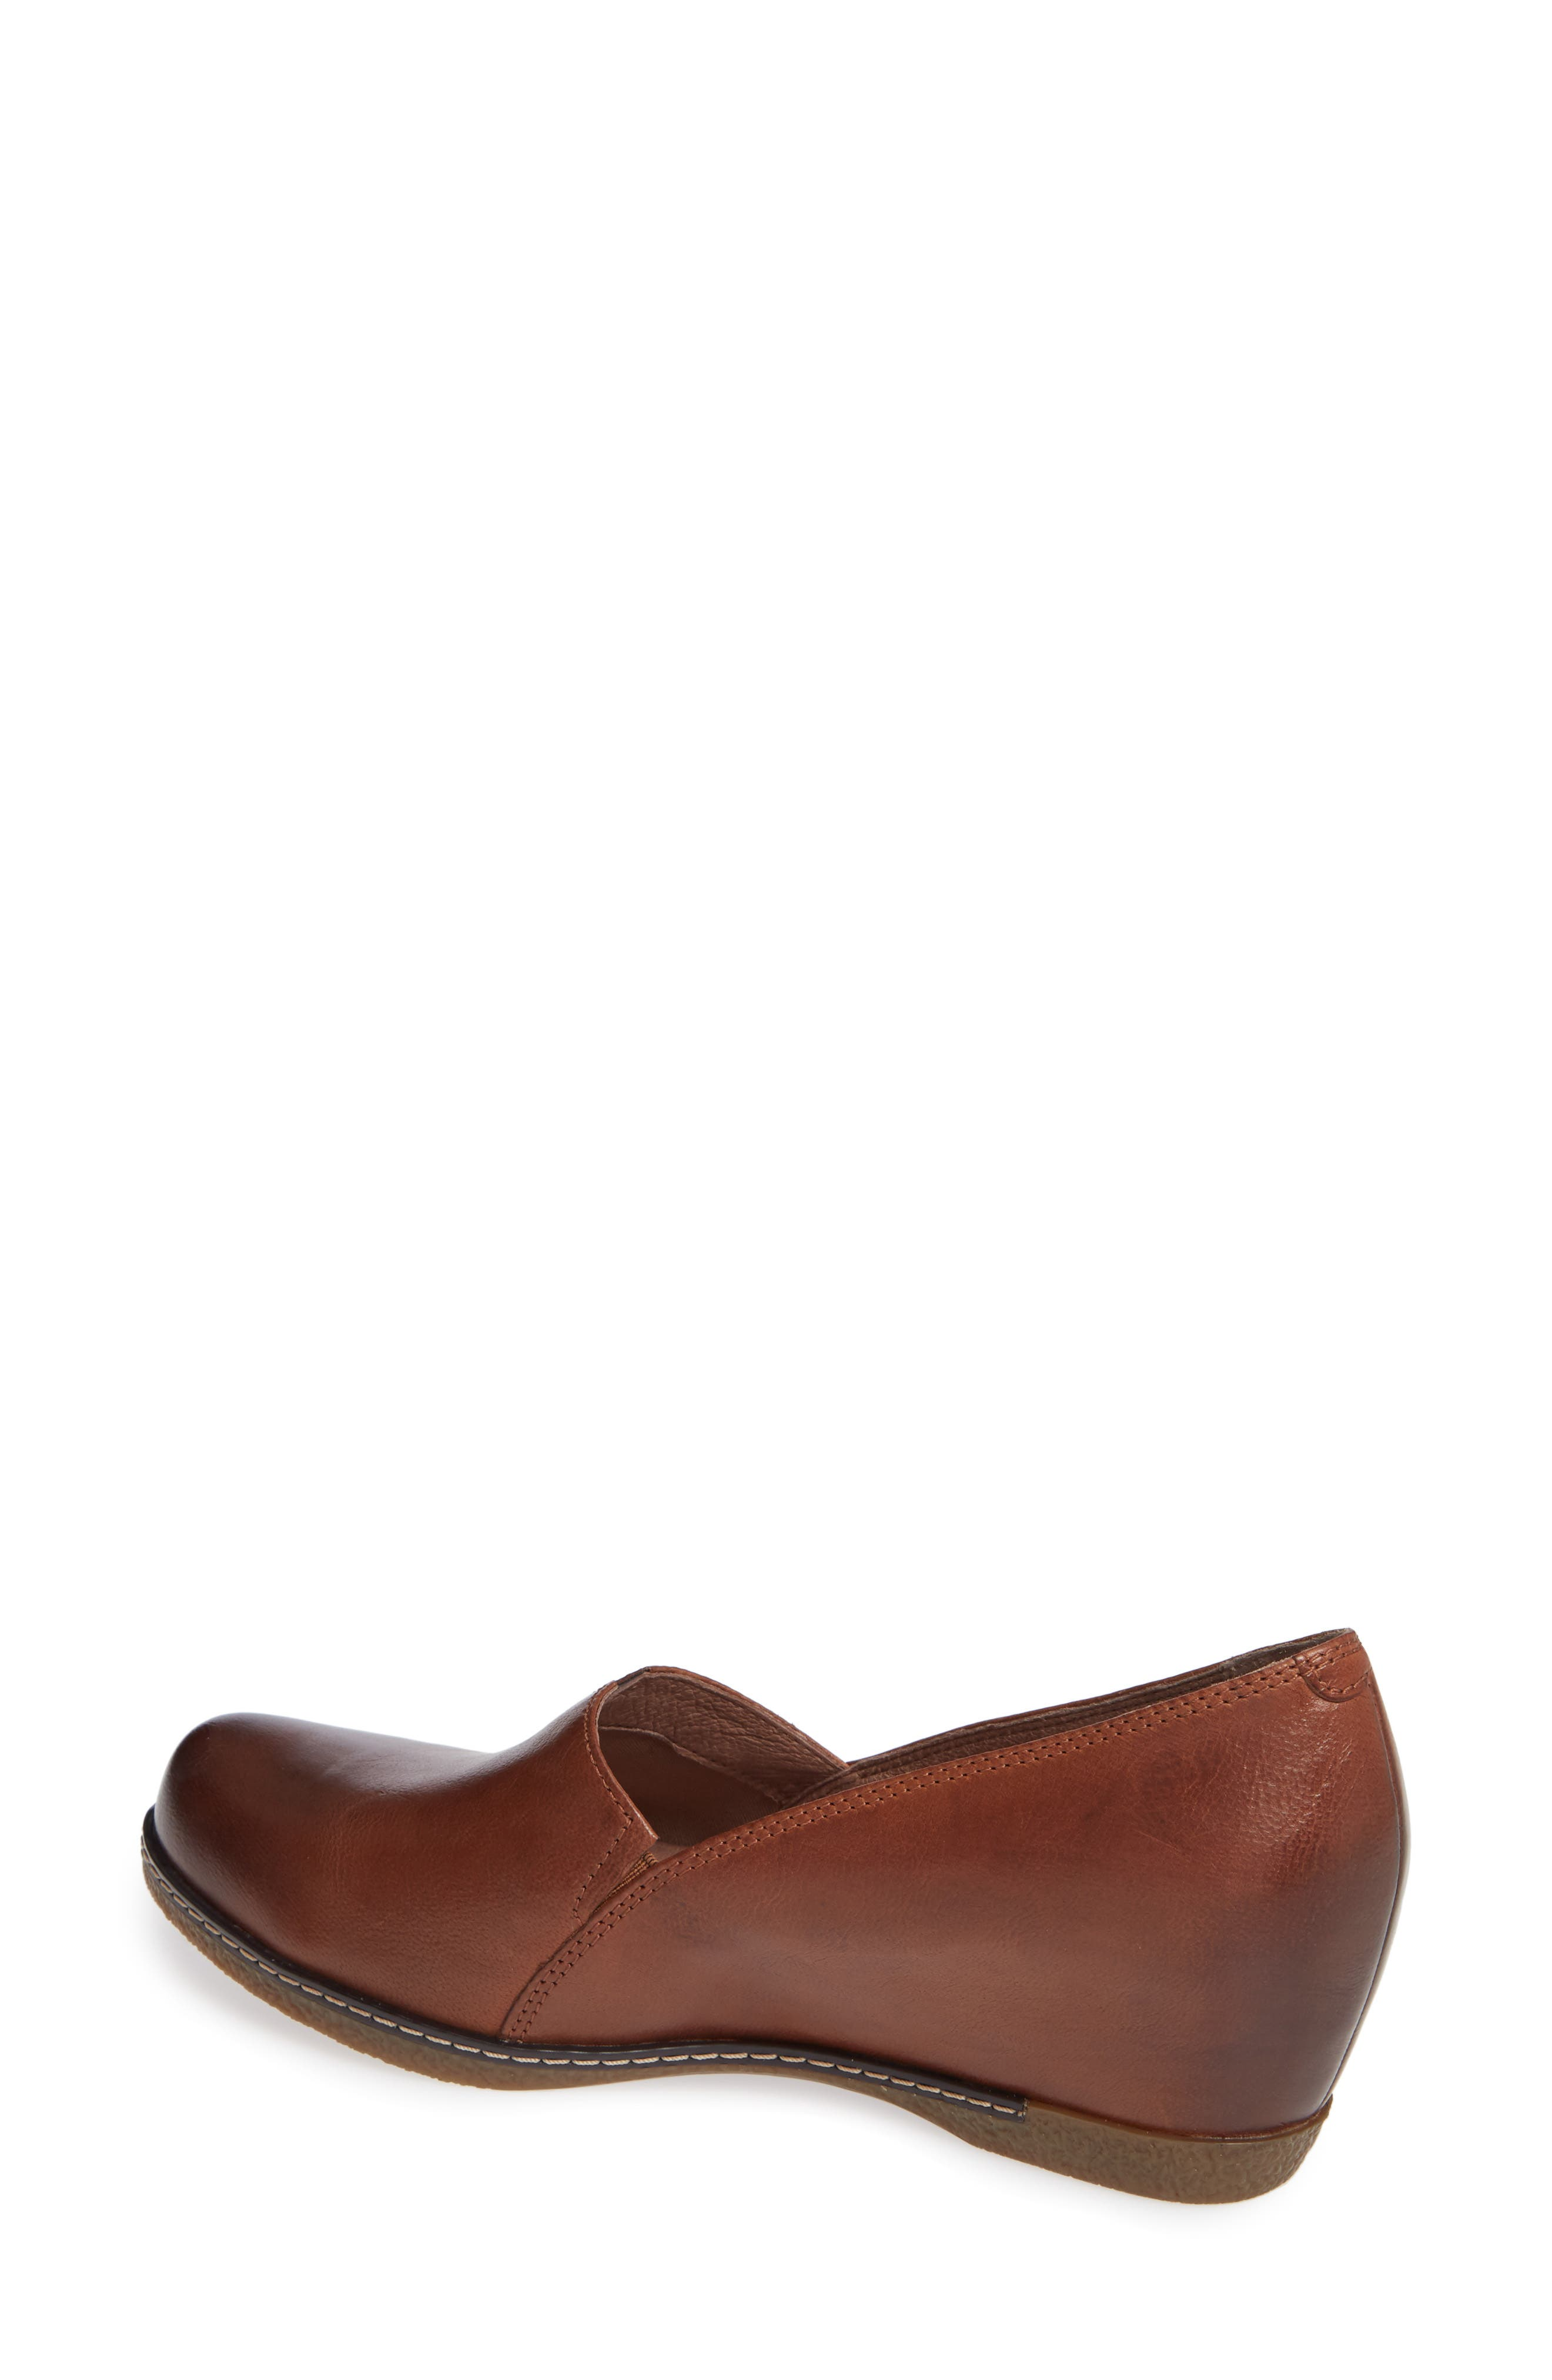 Liliana Concealed Wedge Slip-On,                             Alternate thumbnail 2, color,                             CHESTNUT BURNISHED LEATHER